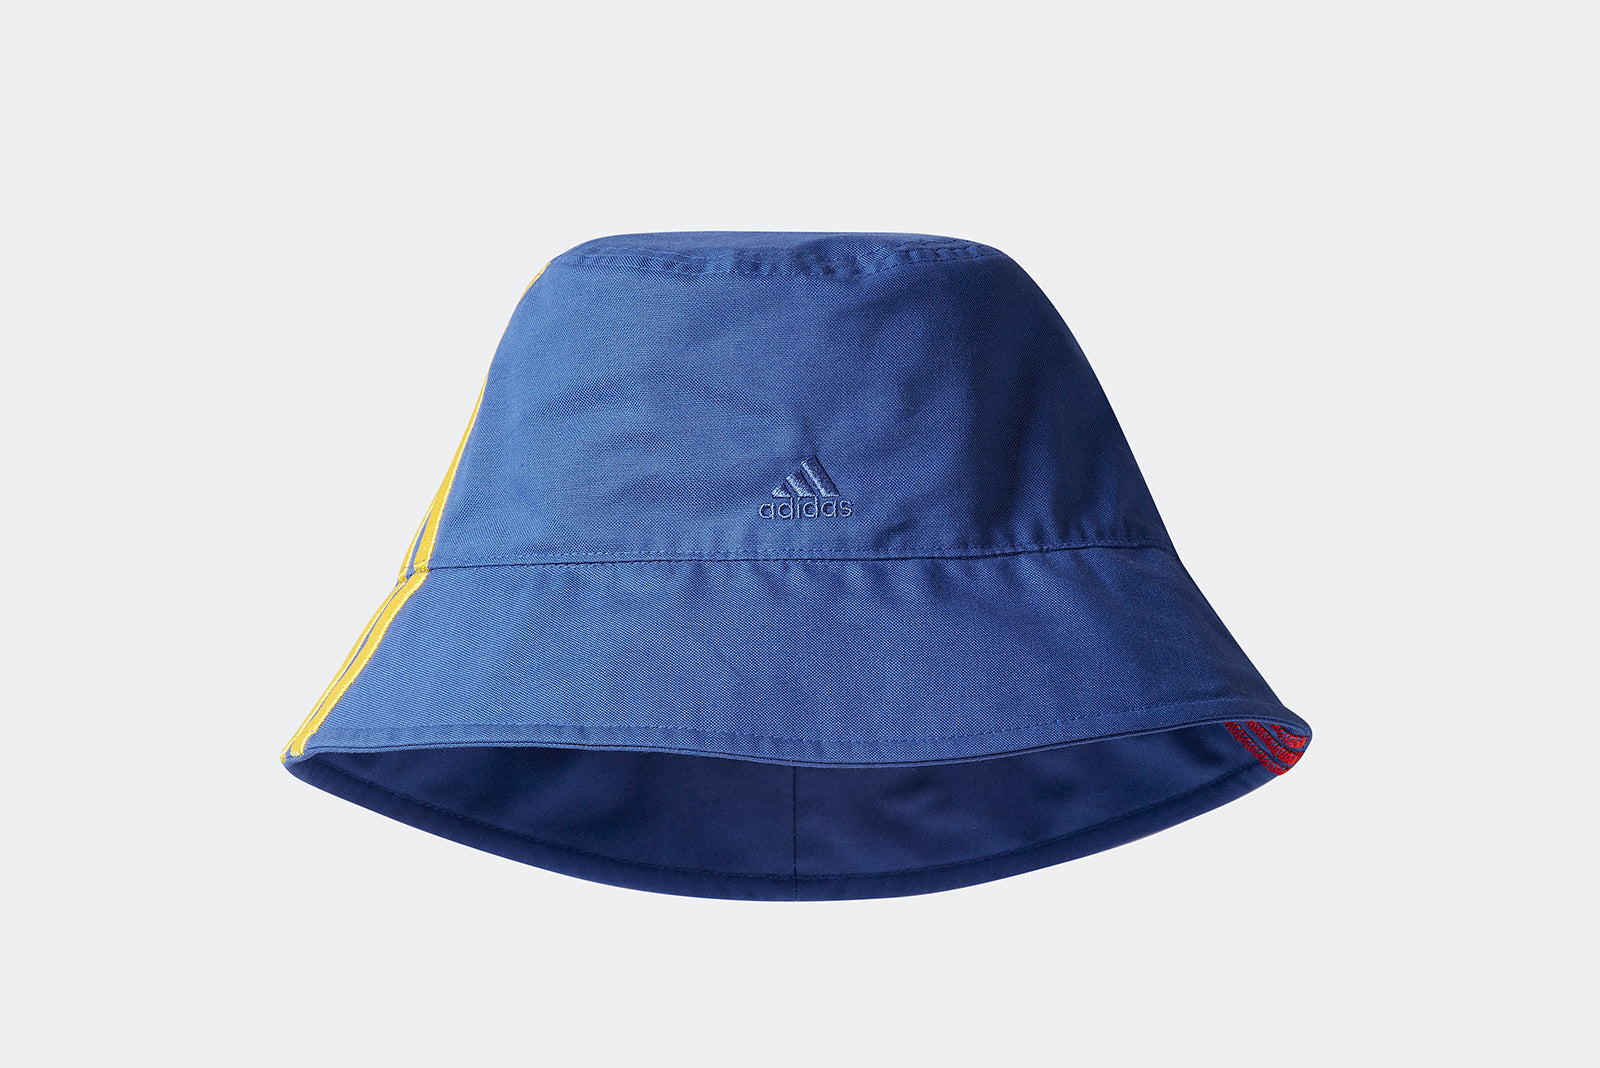 c6483bbad4228 adidas Consortium Bucket Hat x Engineered Garments DW4358 Bold Blue Price   £49.00